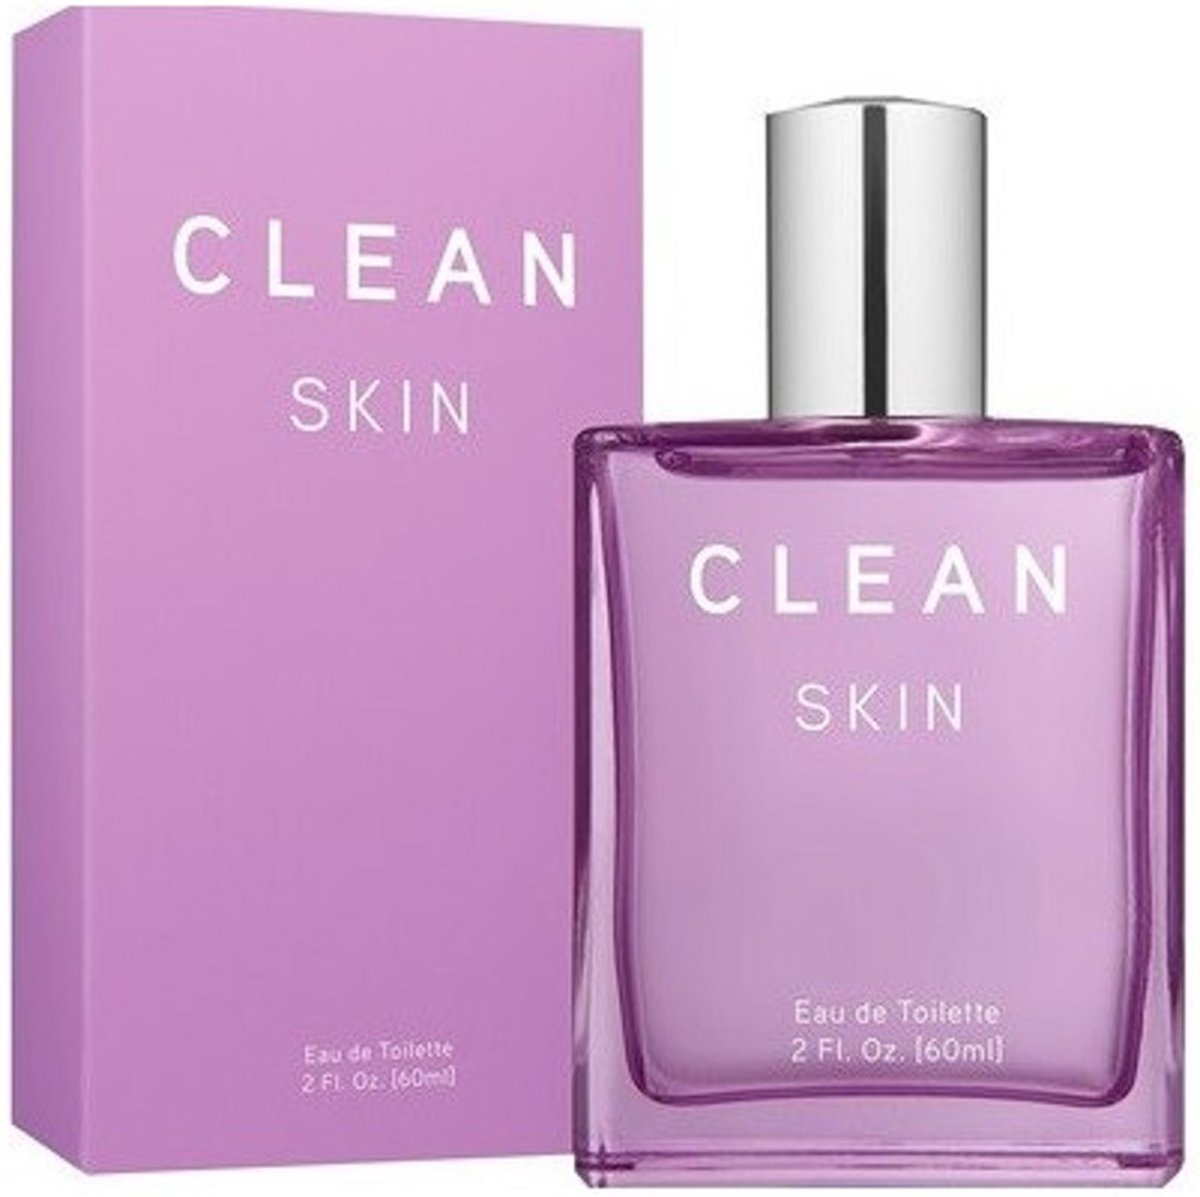 Clean Skin Eau De Toilette 60Ml